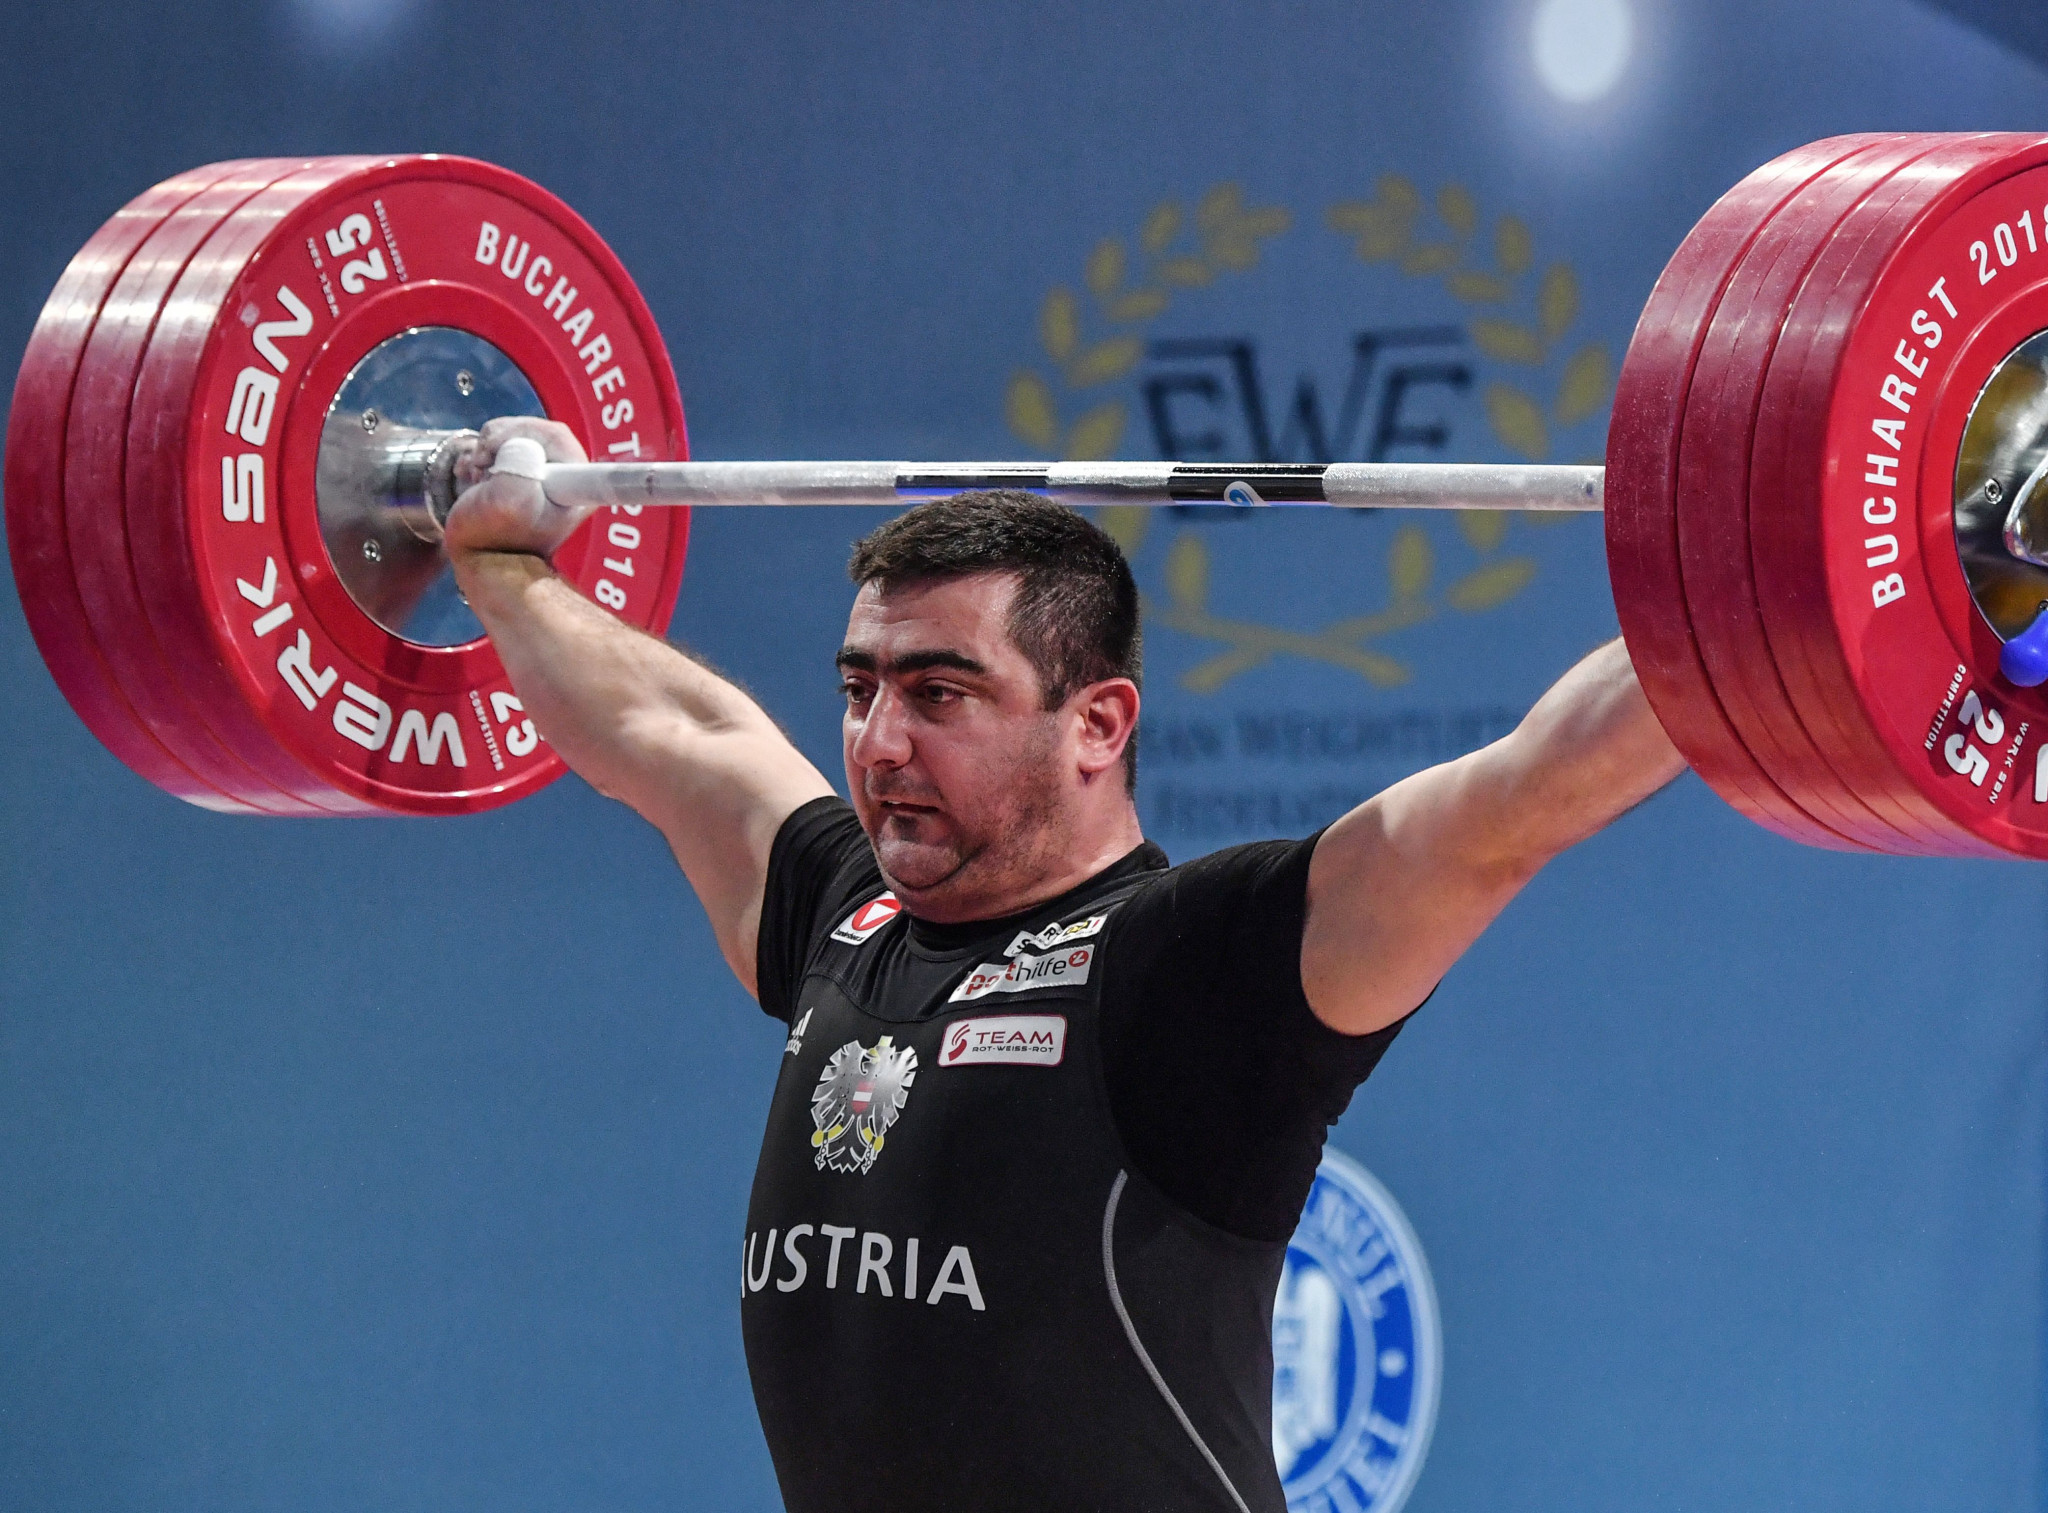 European Weightlifting Championships organisers request countries confirm intent to compete